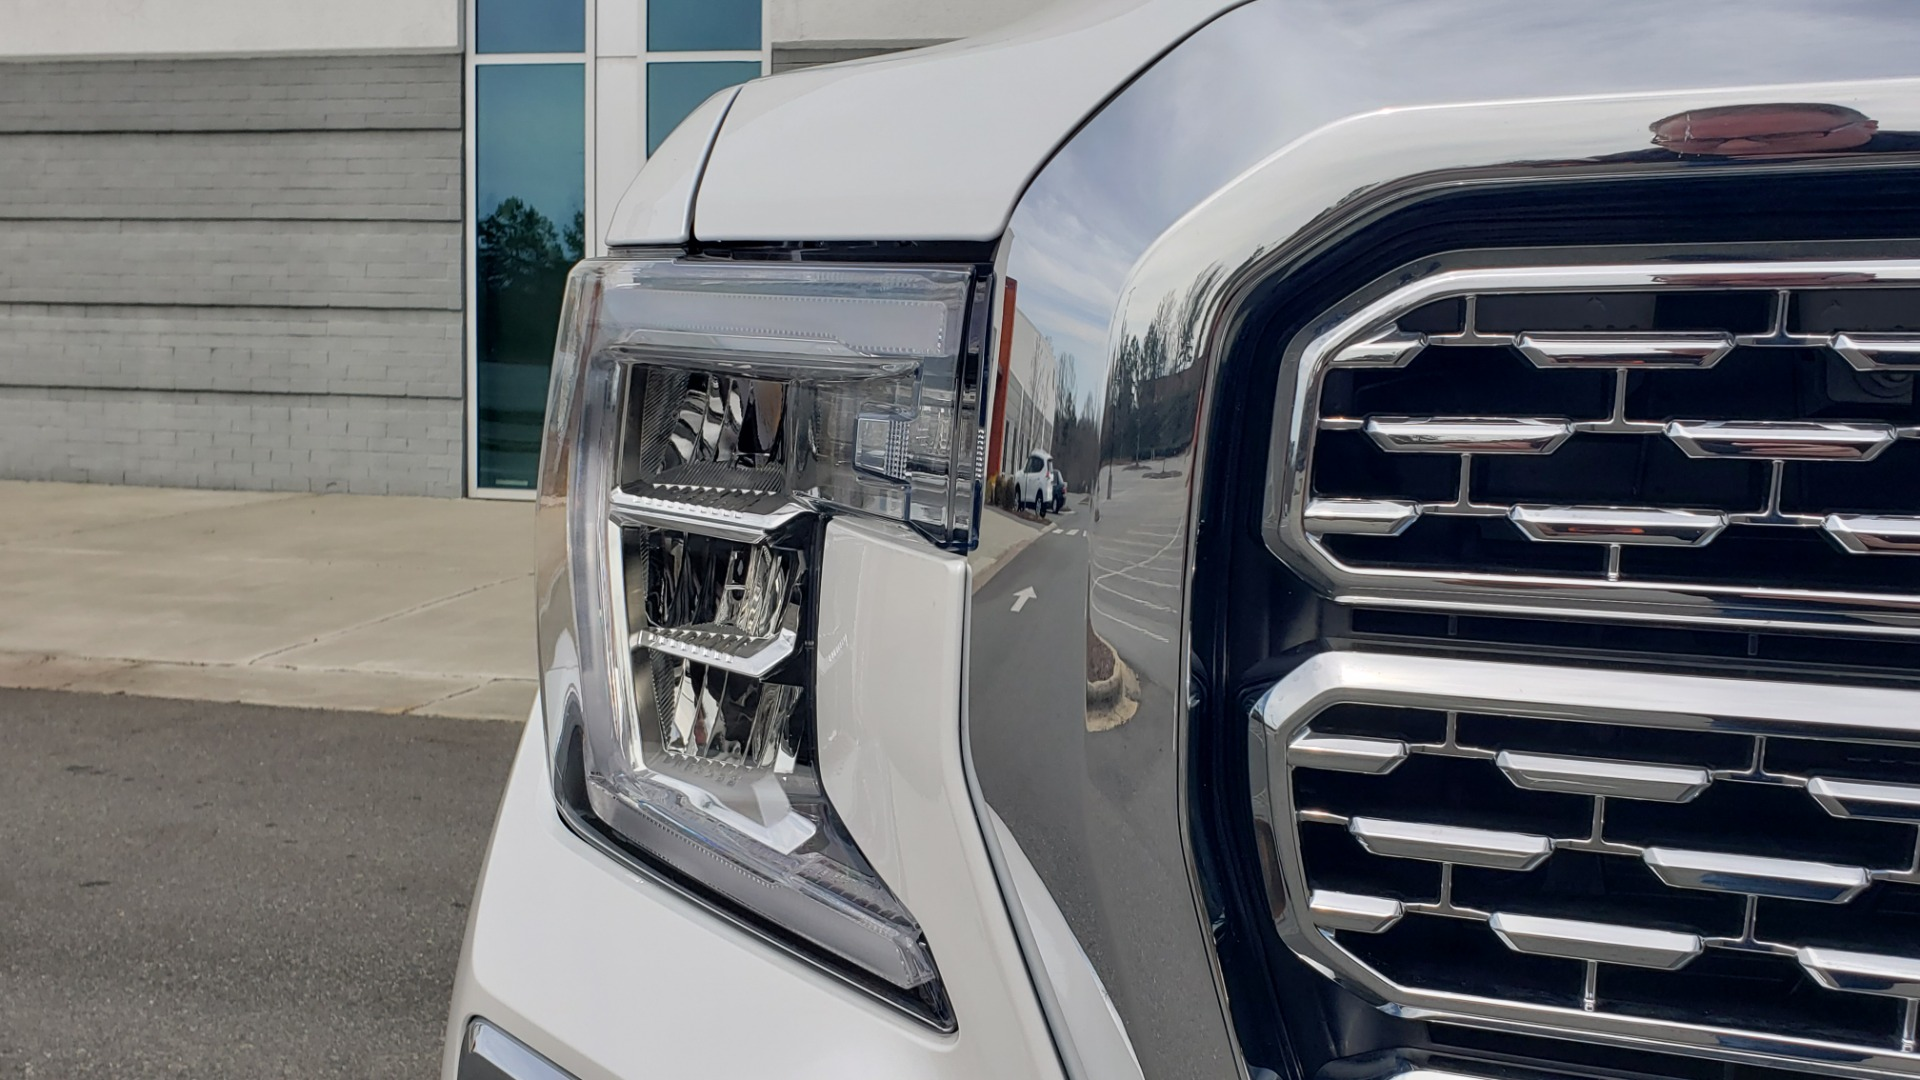 Used 2020 GMC SIERRA 1500 DENALI 4X4 CREWCAB 6.2L V8 / TECH / NAV / SUNROOF / DRVR ALERT II for sale Sold at Formula Imports in Charlotte NC 28227 21